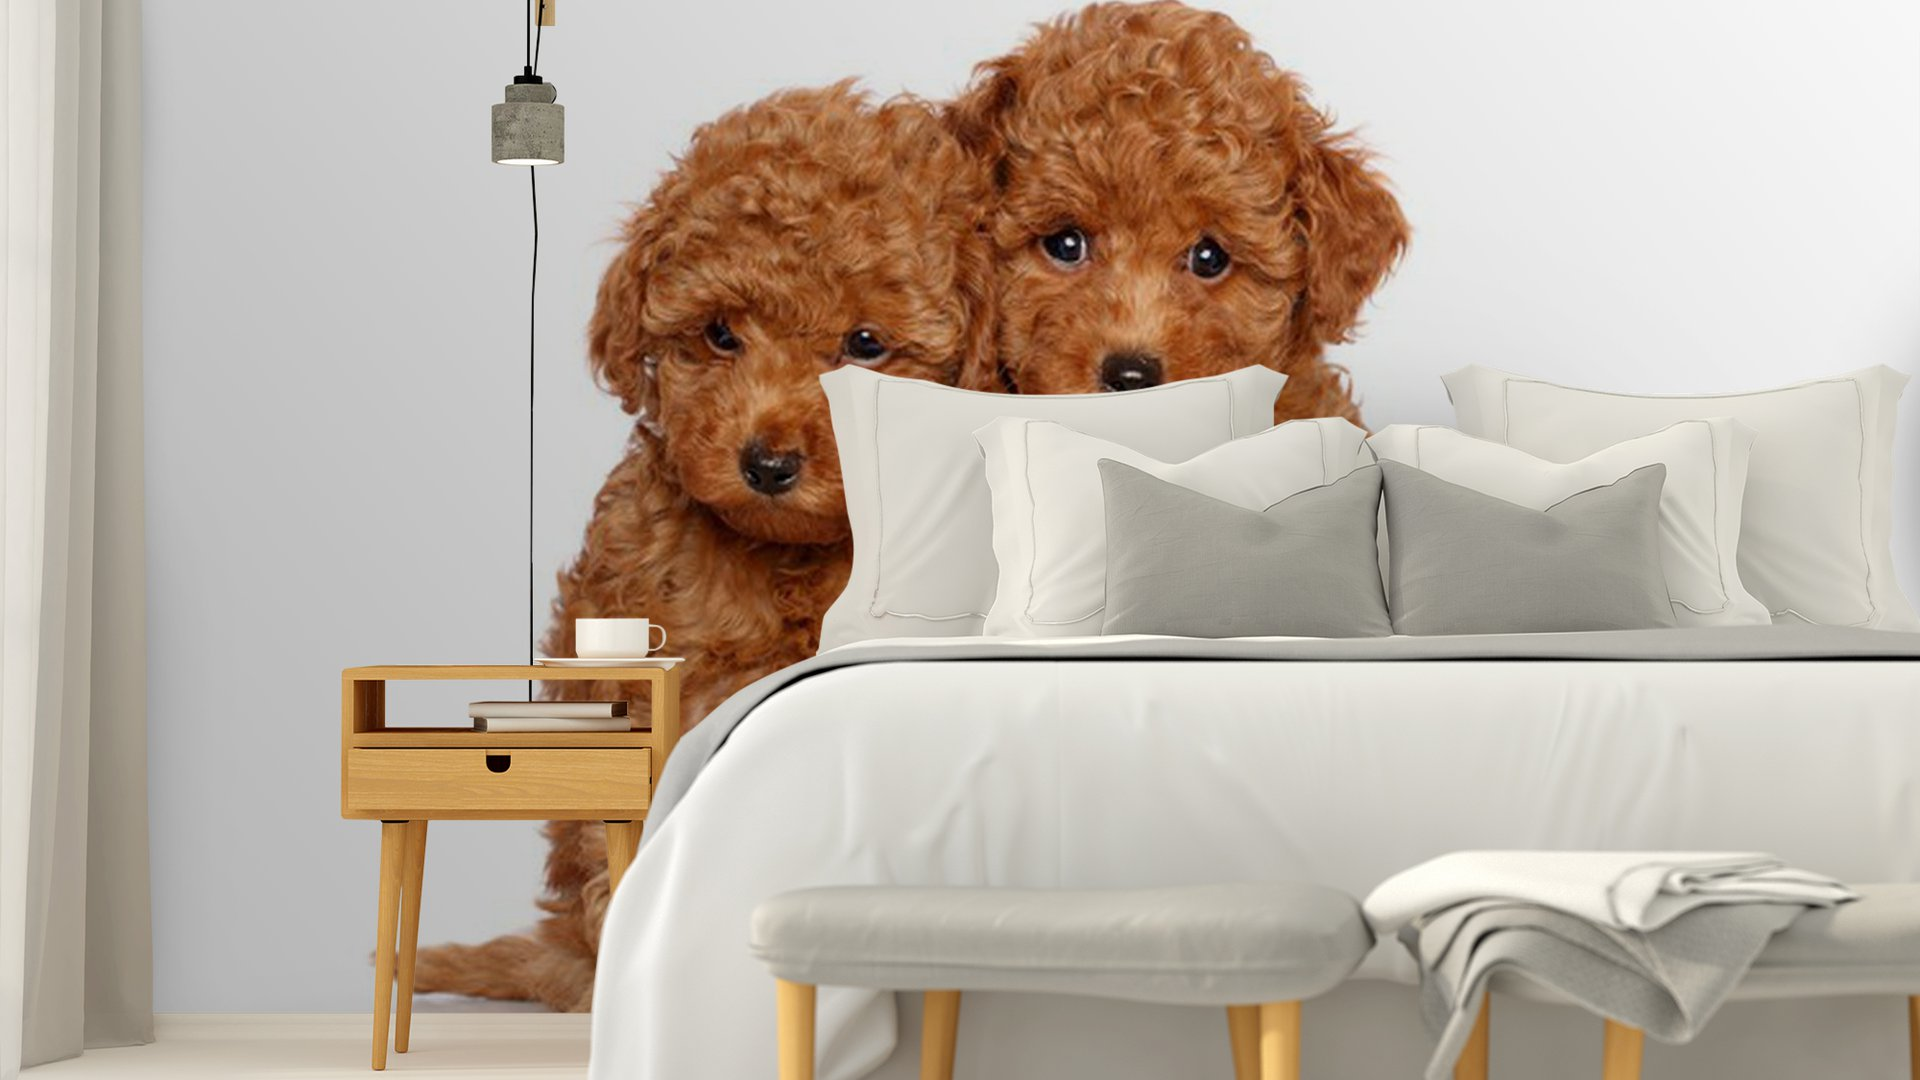 poodle wallpaper for walls - photo #25